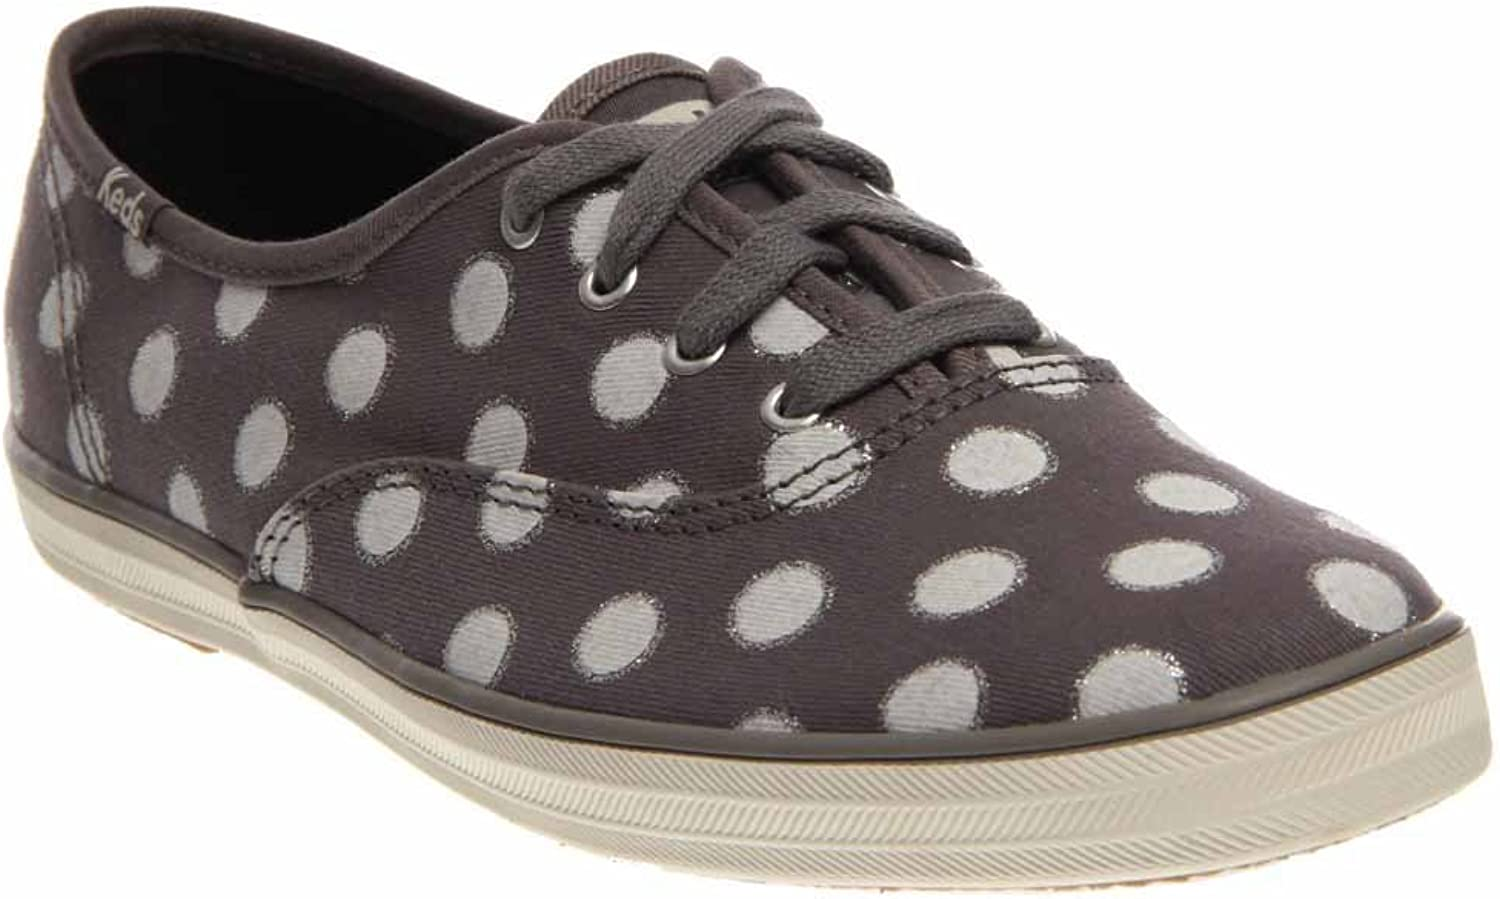 Keds Women's Champion Glitter Dot Grey Canvas Glitter Sneaker 8 B (M)